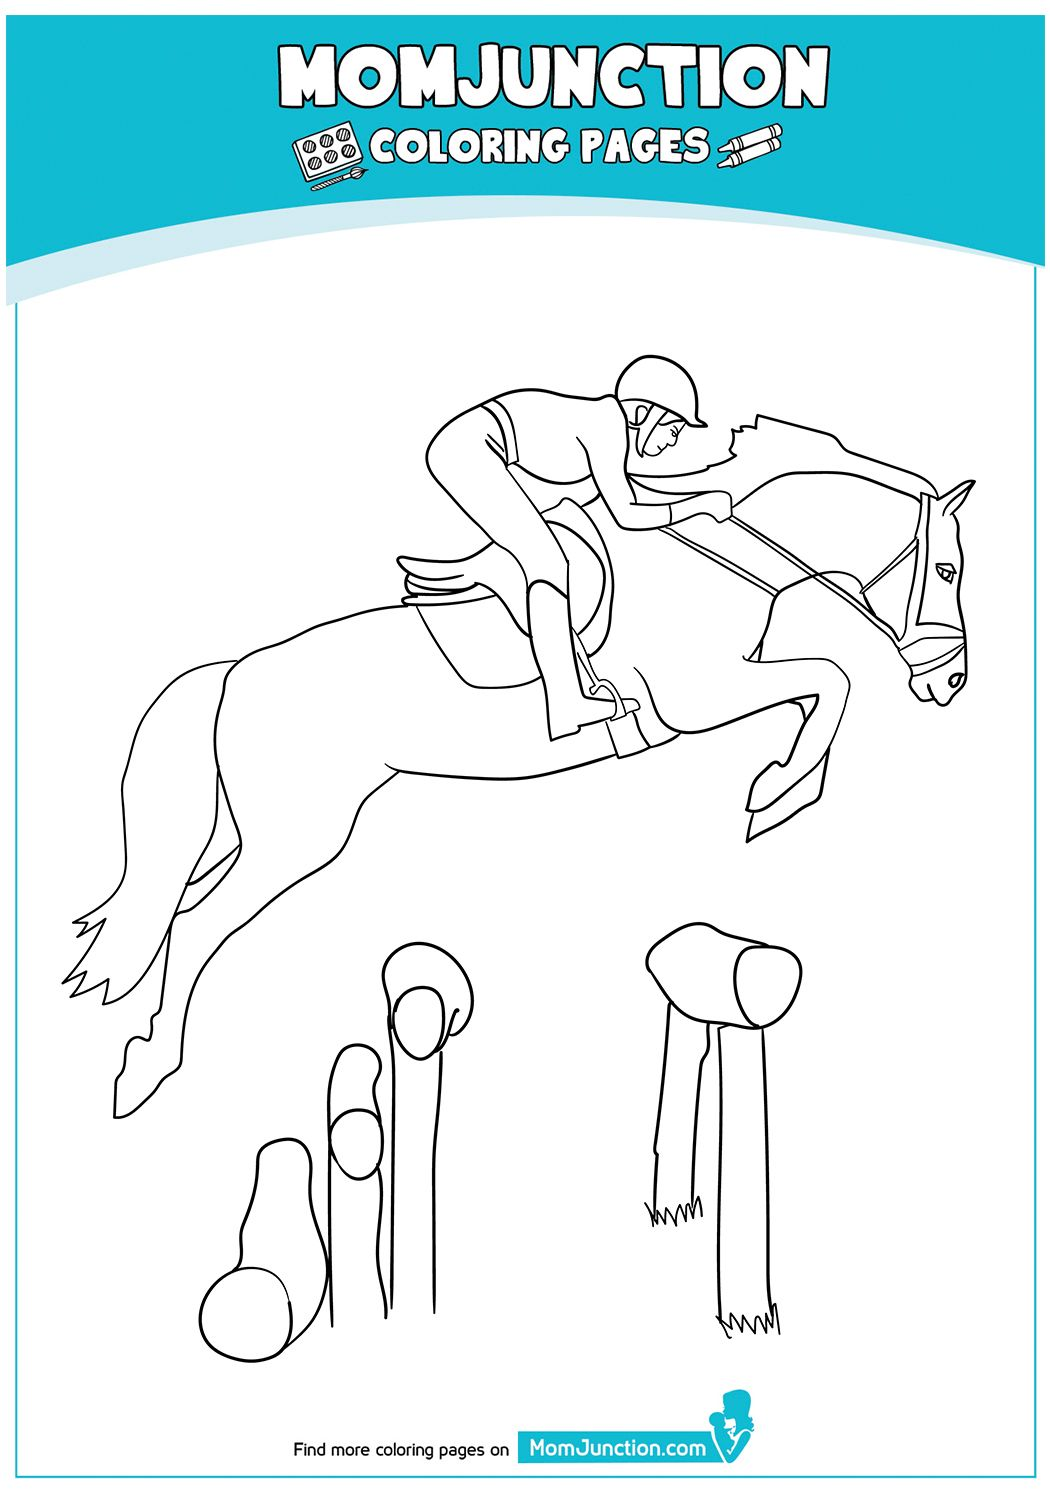 Irish Sport Horse 17 Coloring Pages Horse Coloring Pages Horse Coloring Books [ 1500 x 1050 Pixel ]